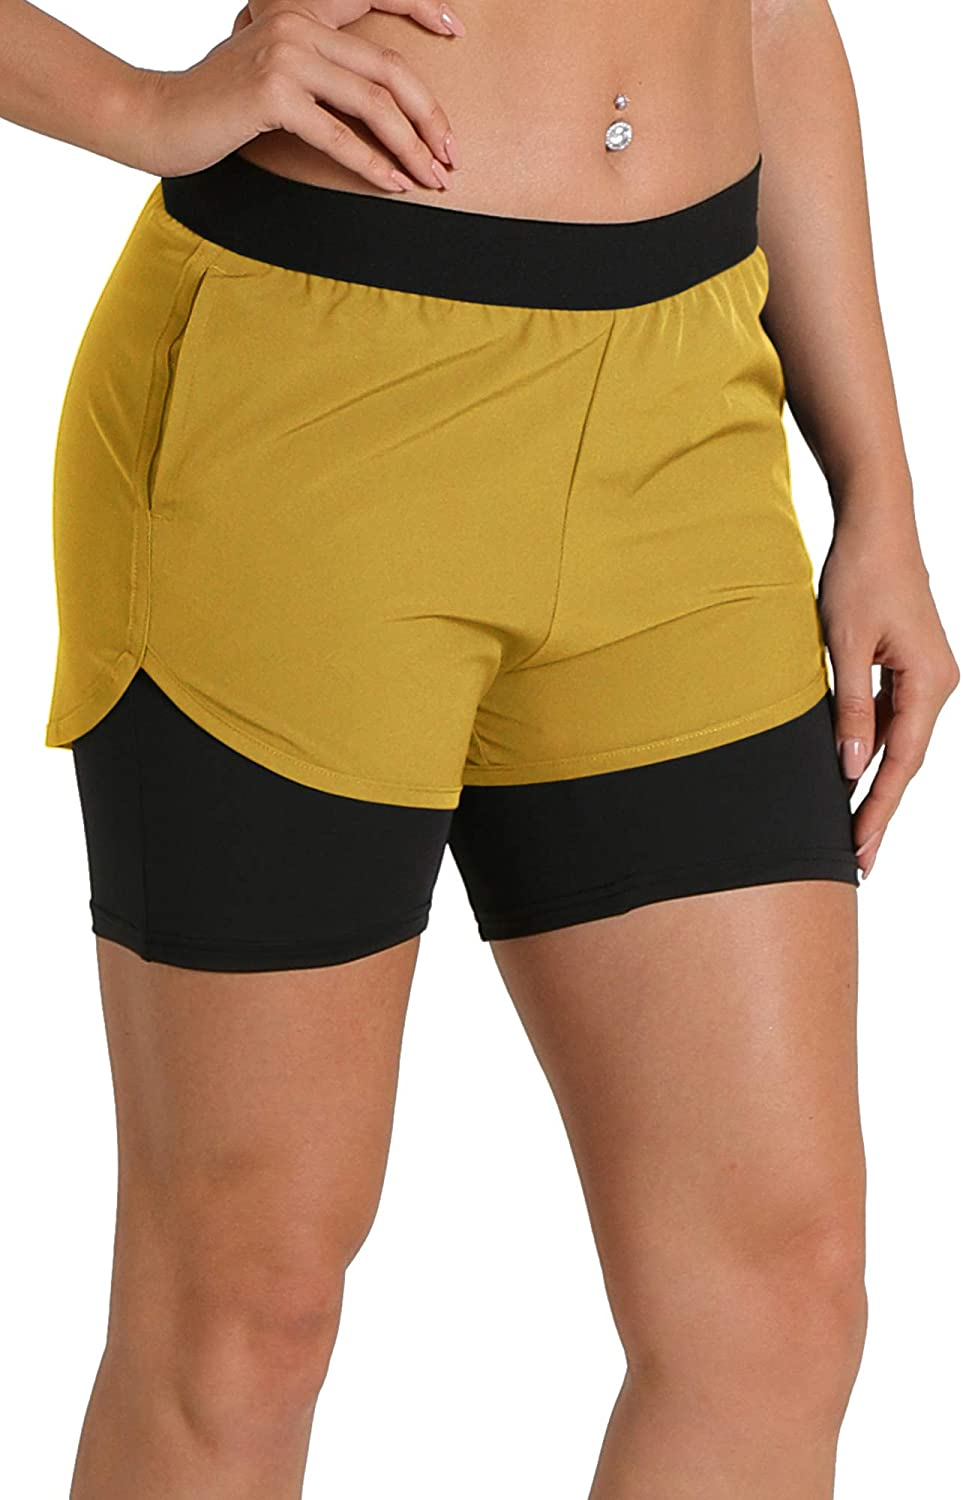 icyzone Women's Workout Shorts with Pockets - Athletic Running Yoga Exercise Jogging Shorts 2-in-1